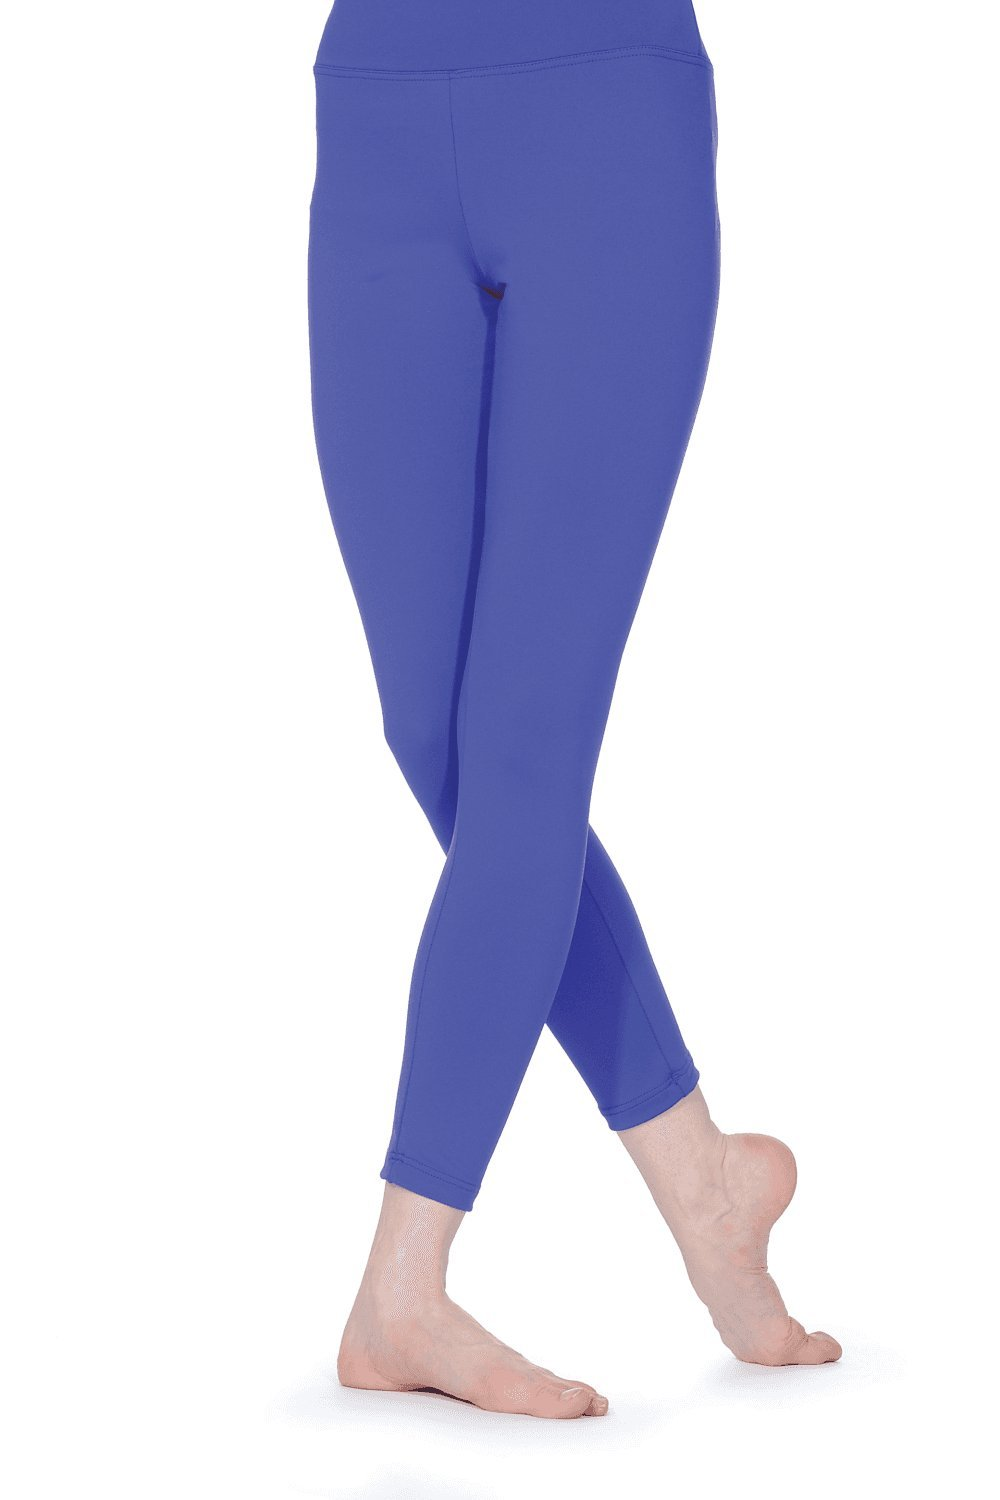 Roch Valley RVACCENT Full Length Leggings